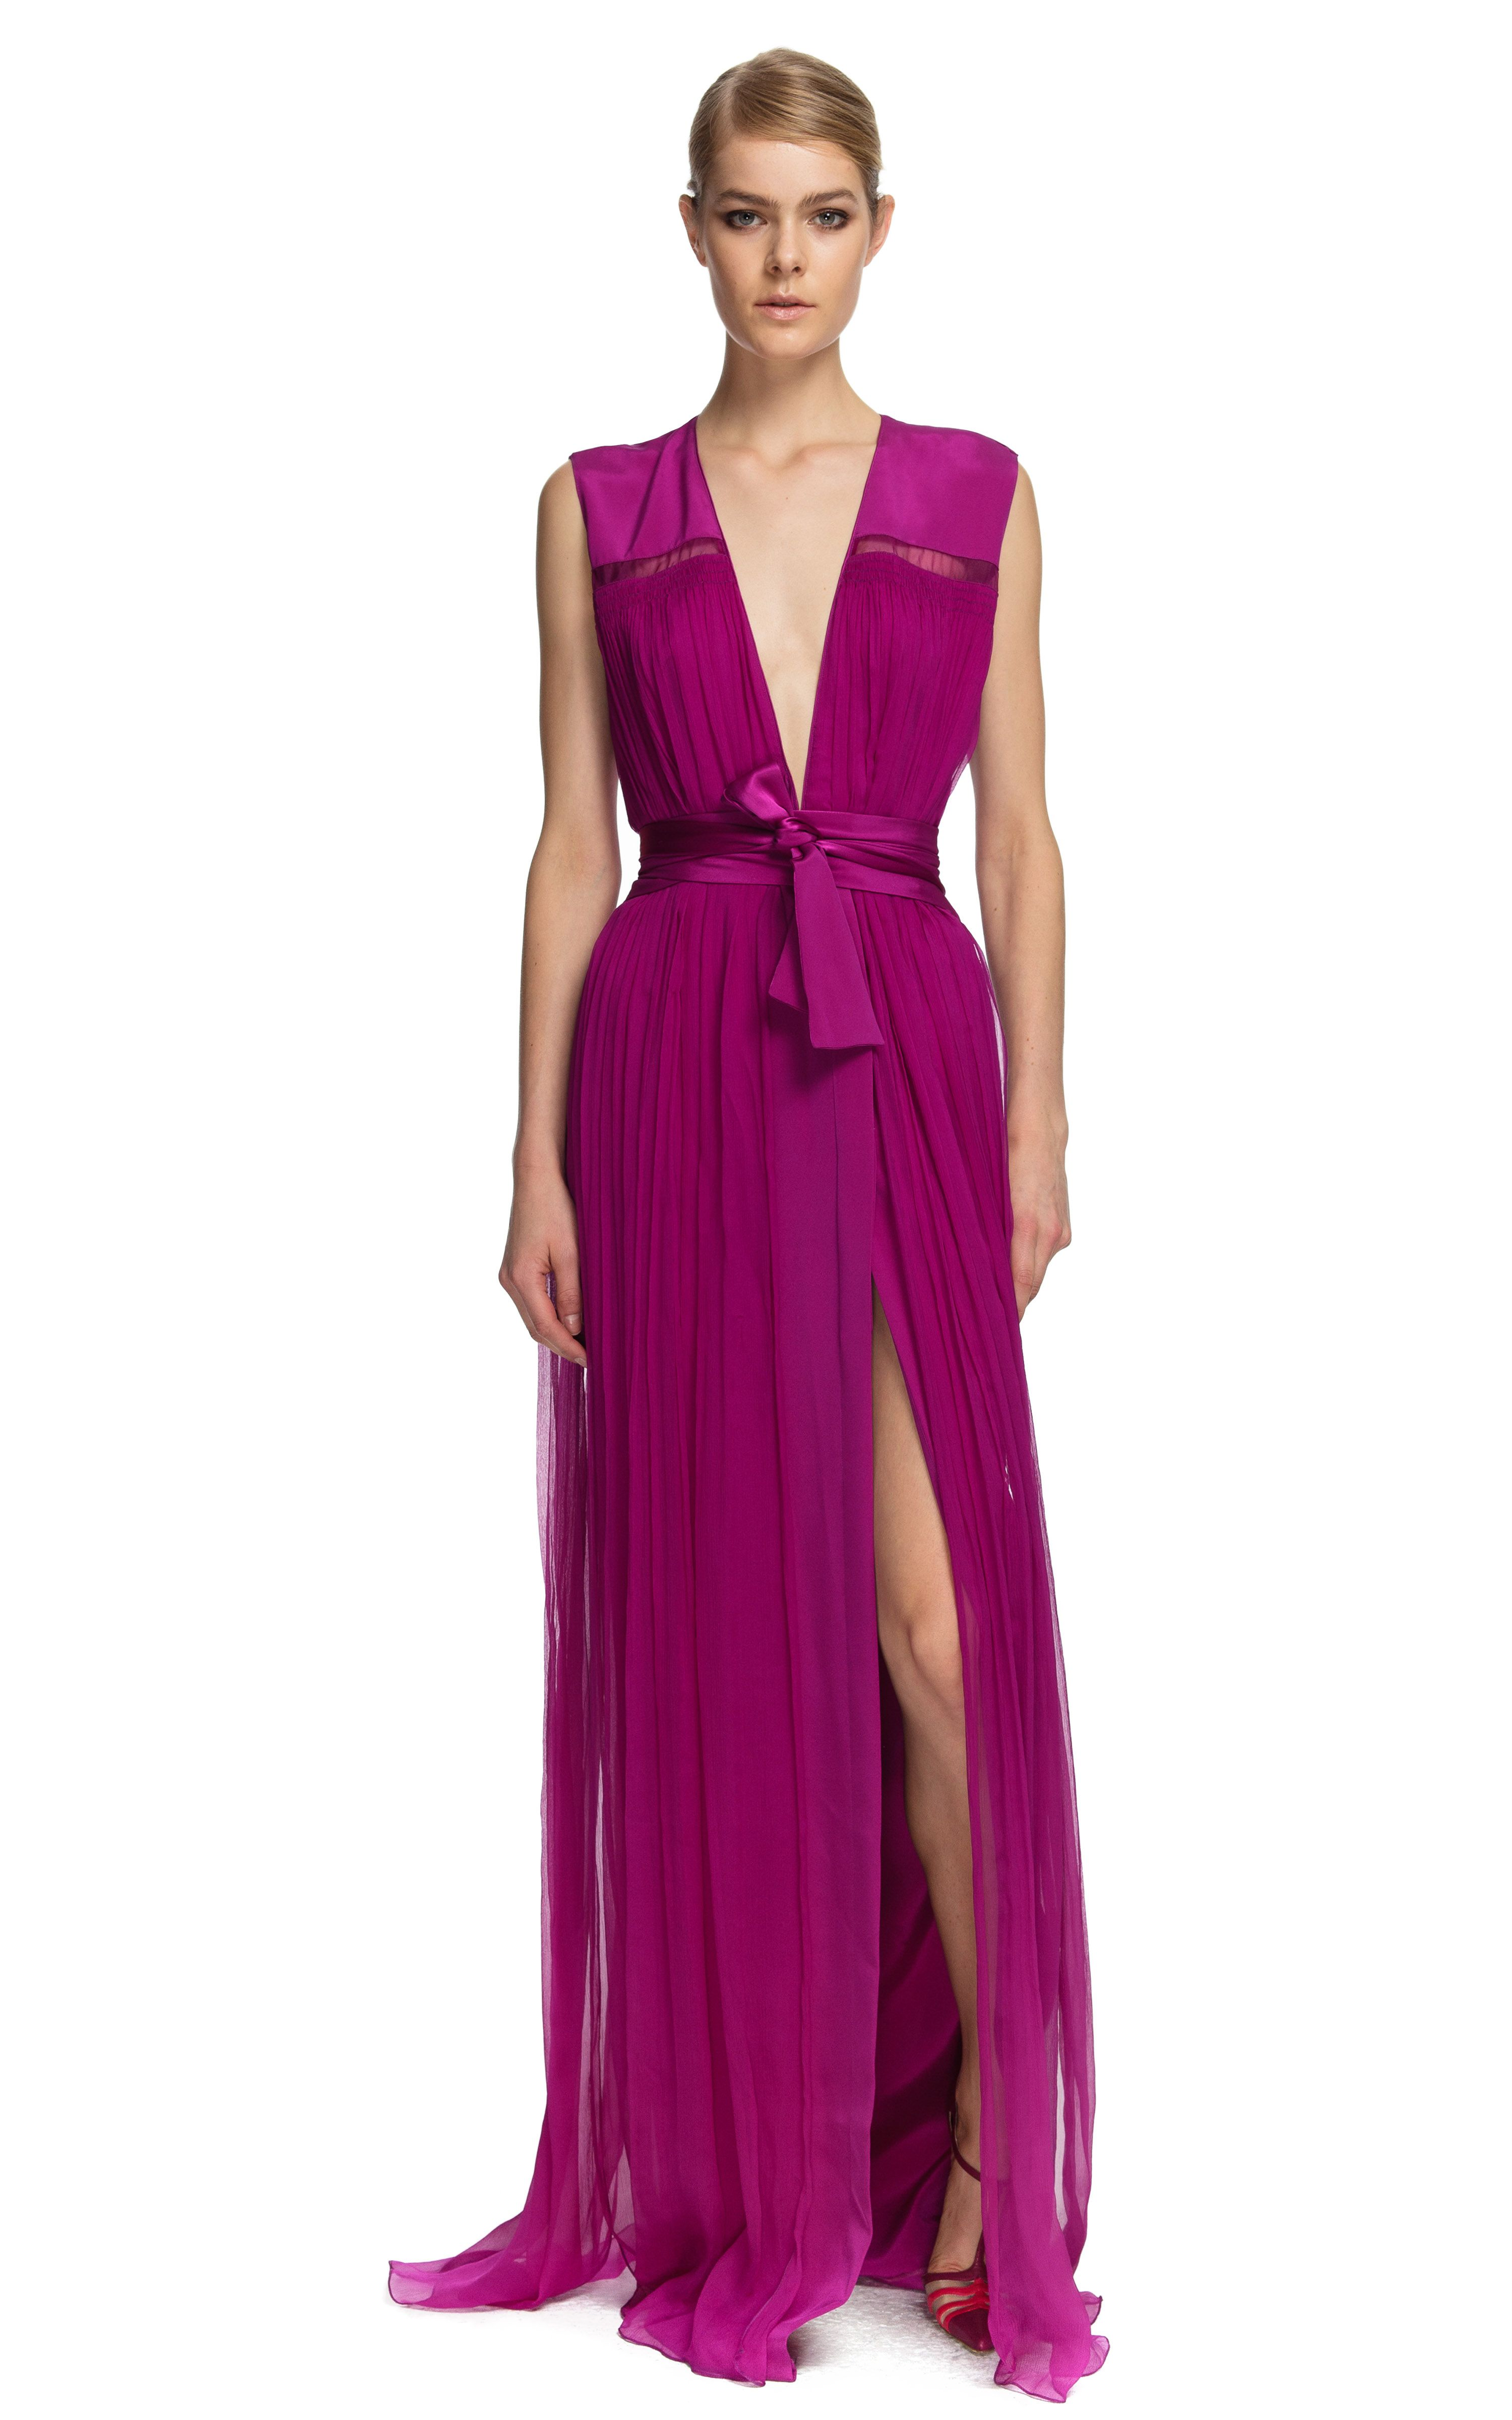 Sophie Theallet   Stretch crepe, style evening gown featuring a ...